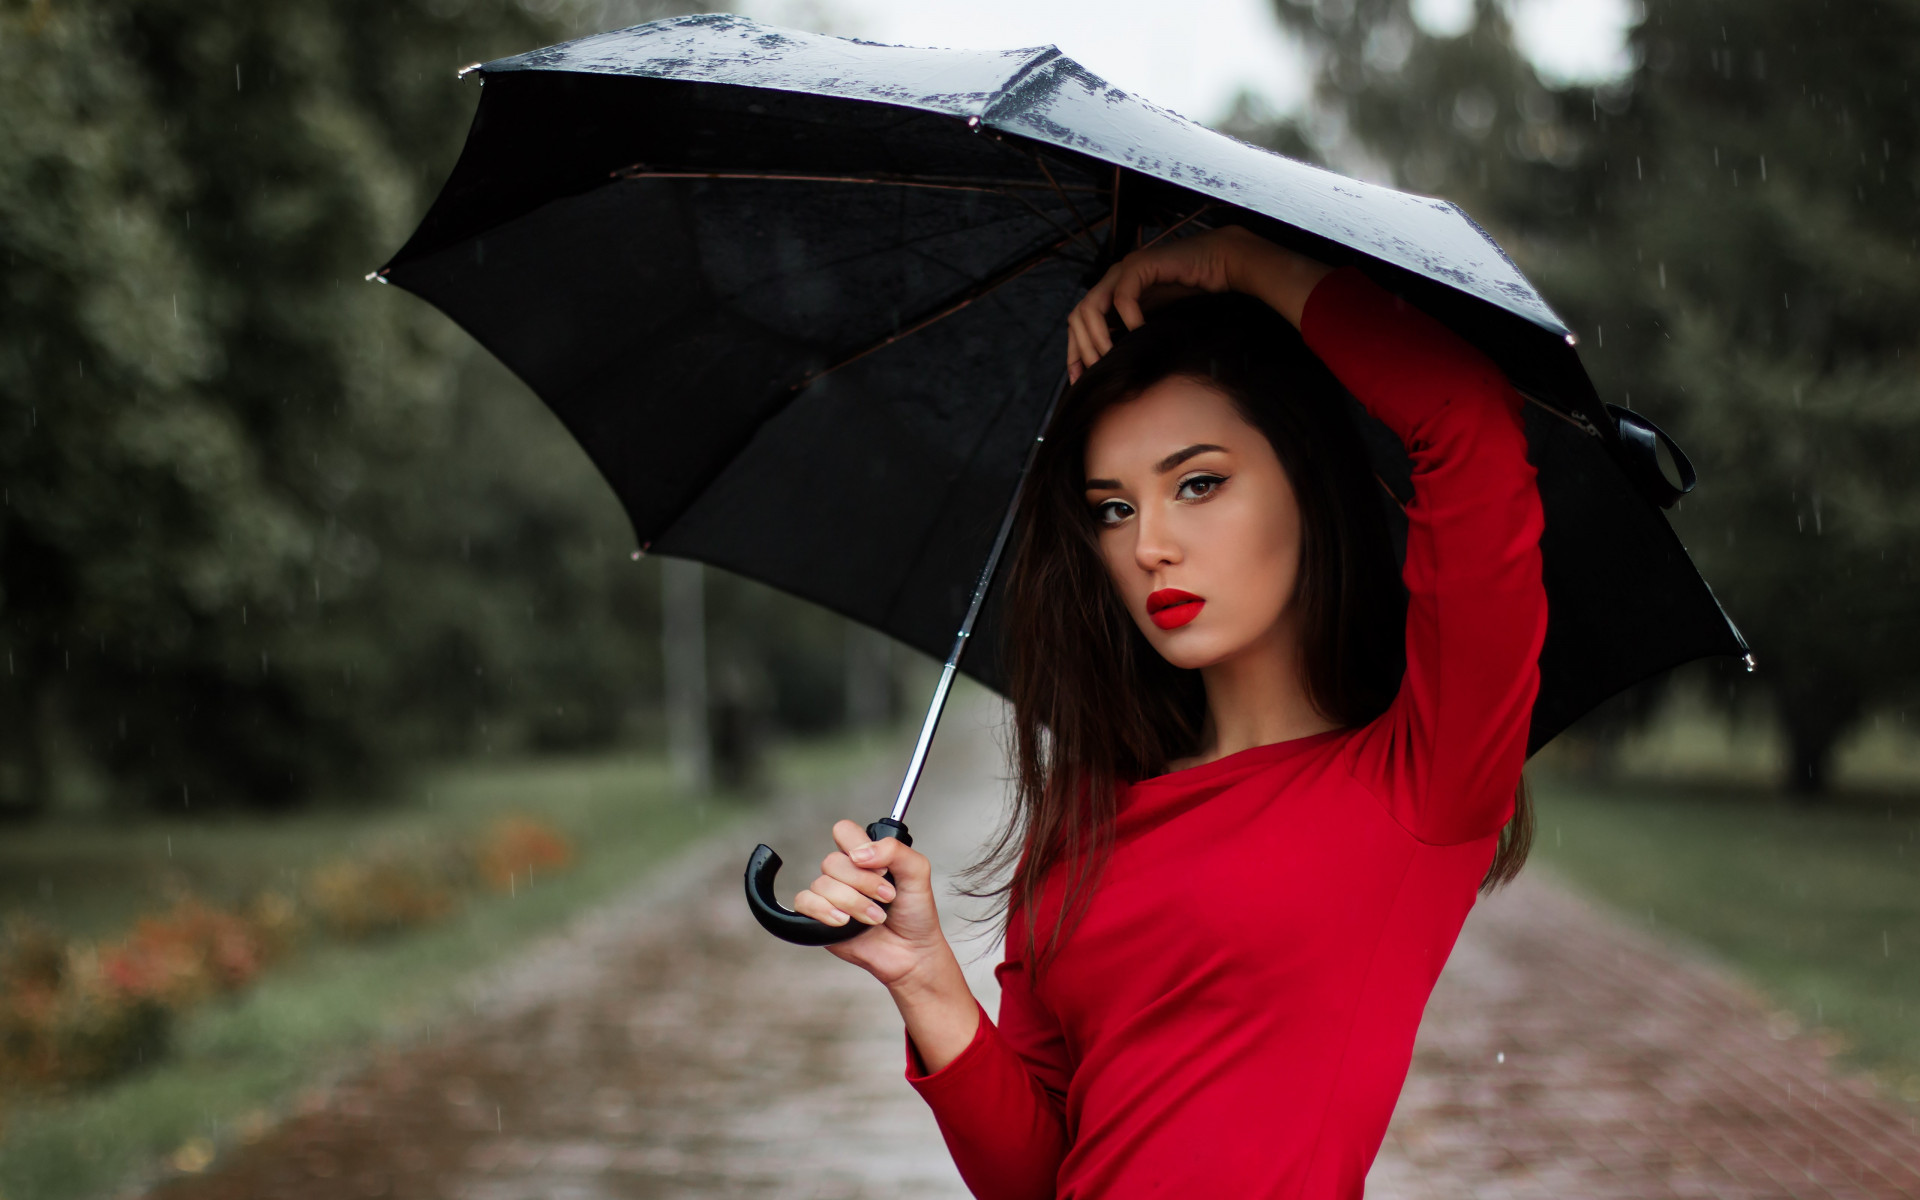 Beauitful girl in a rainy day wallpaper 1920x1200